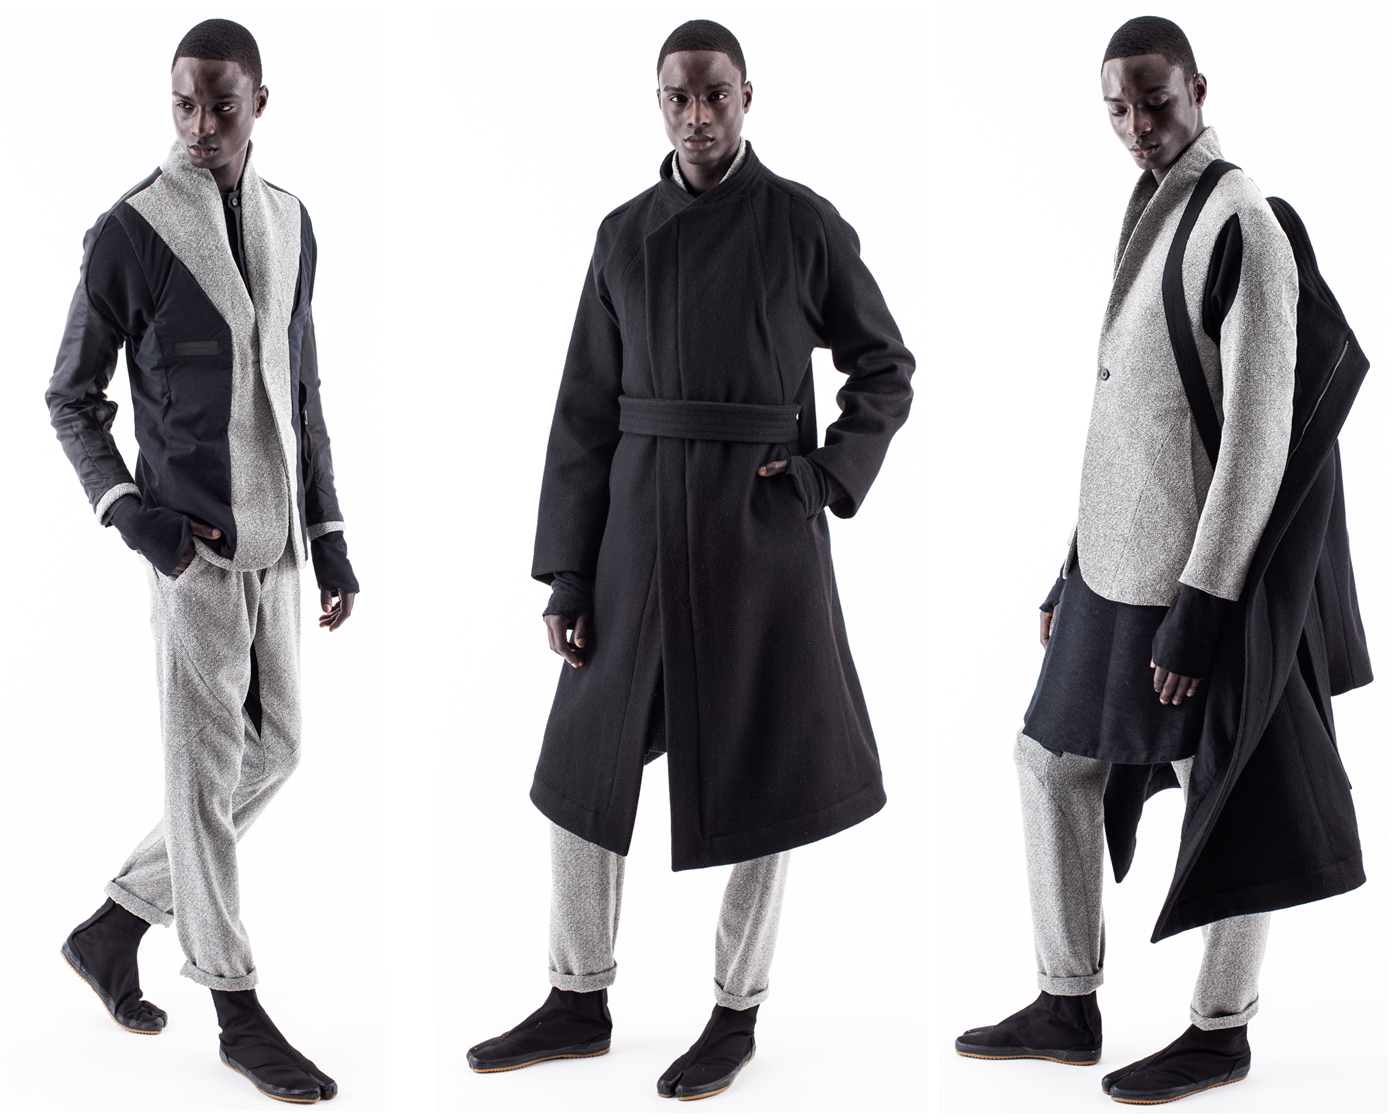 Abasi Rosborough AW15 2.jpg